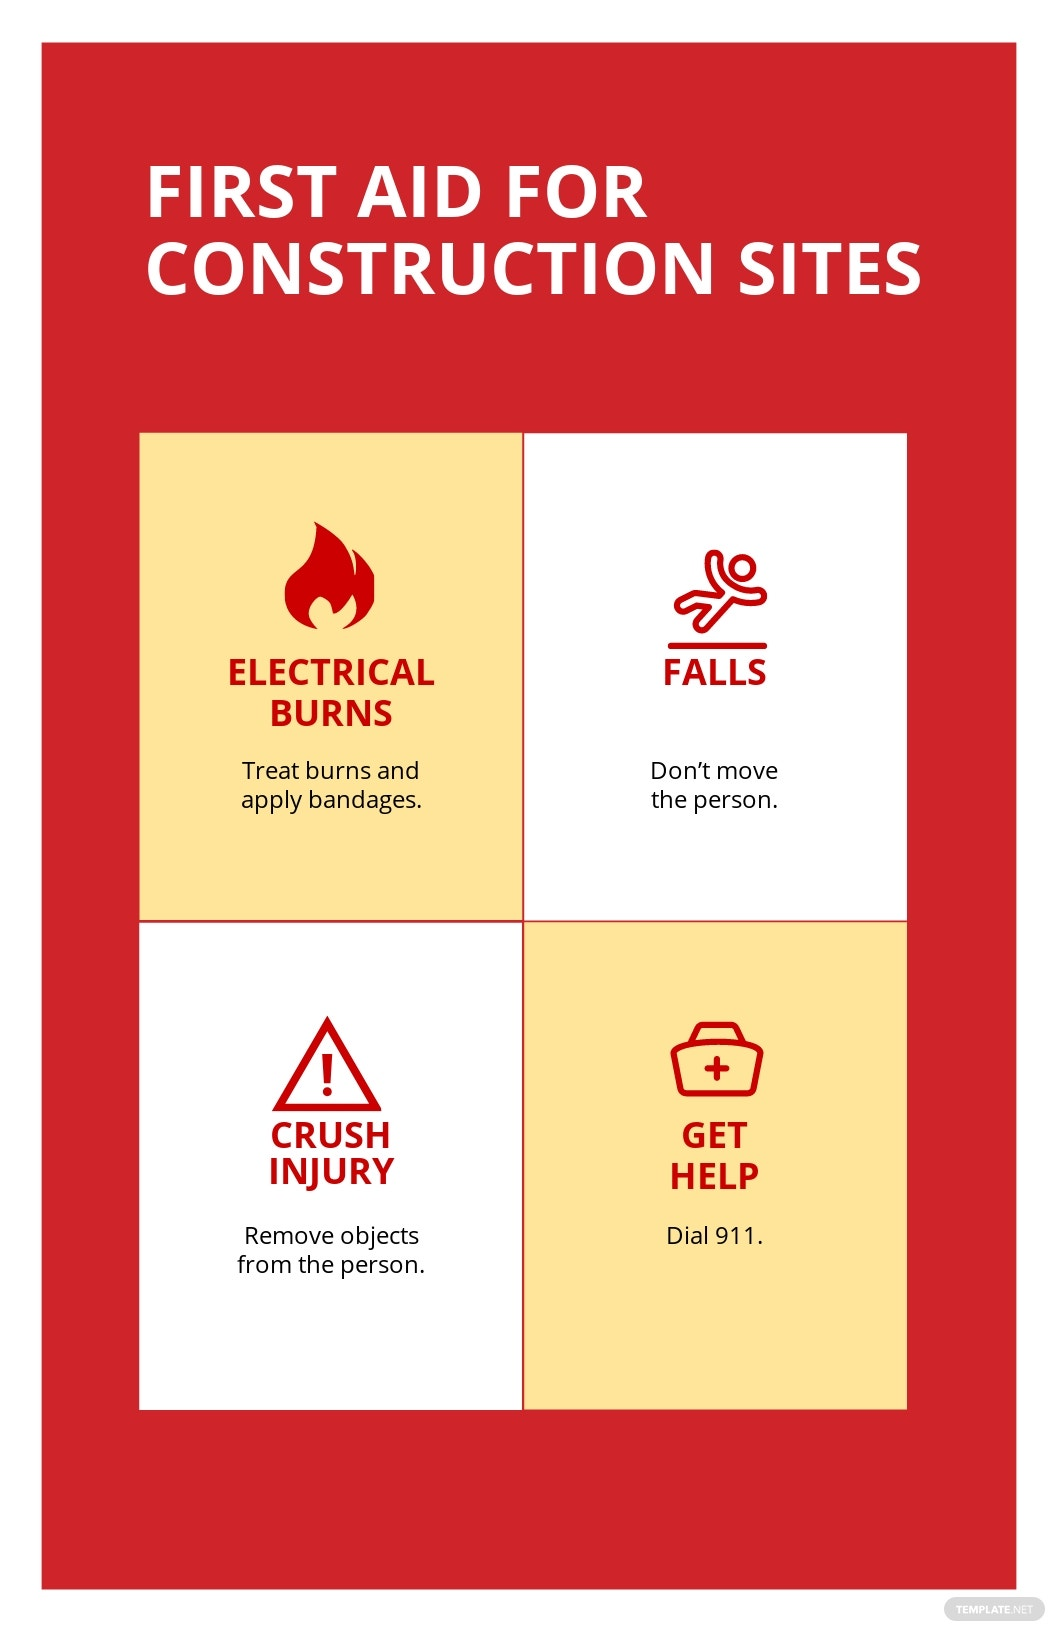 First Aid for Construction Sites Poster Template.jpe